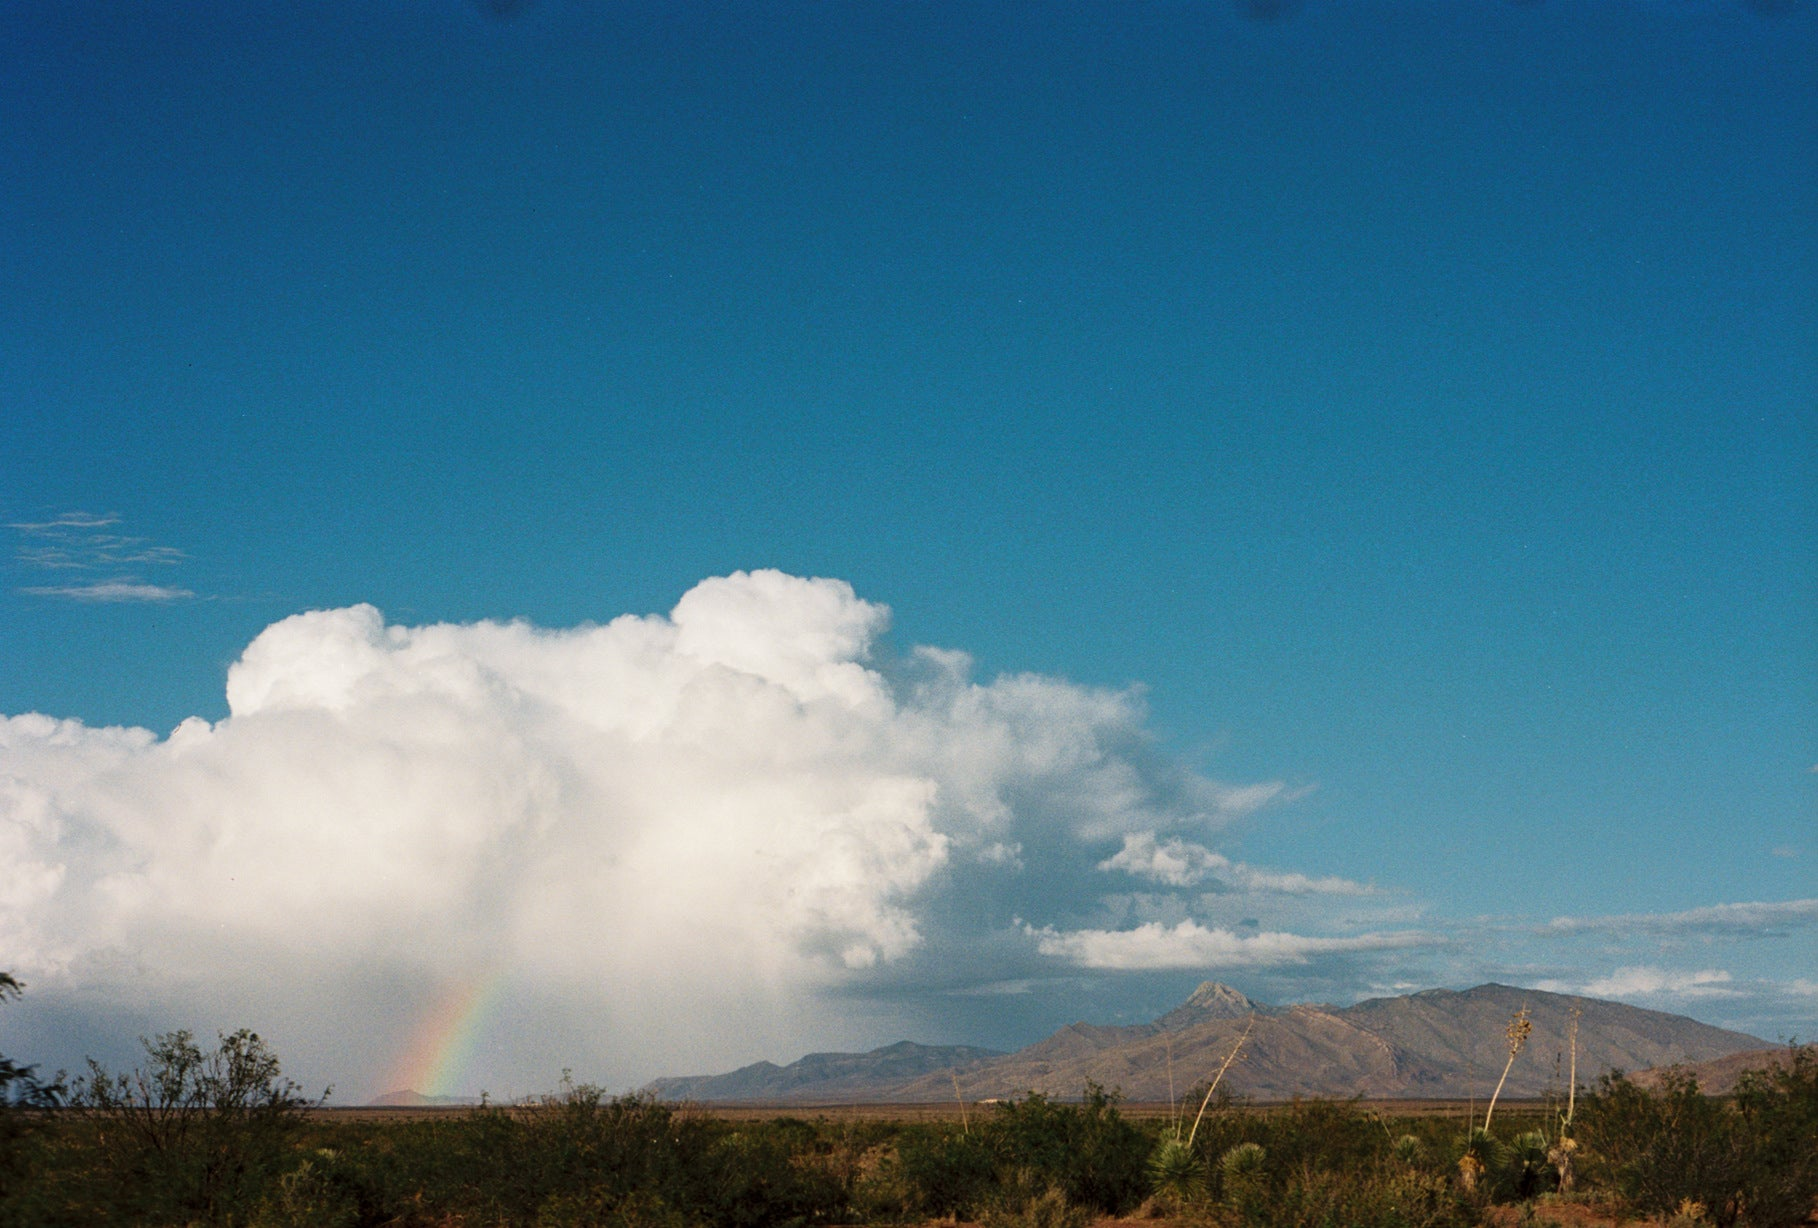 A rainbow over a desert landscape with mountains and white clouds in the foreground and a blue sky above. Photo by Krysta Jabczenski.